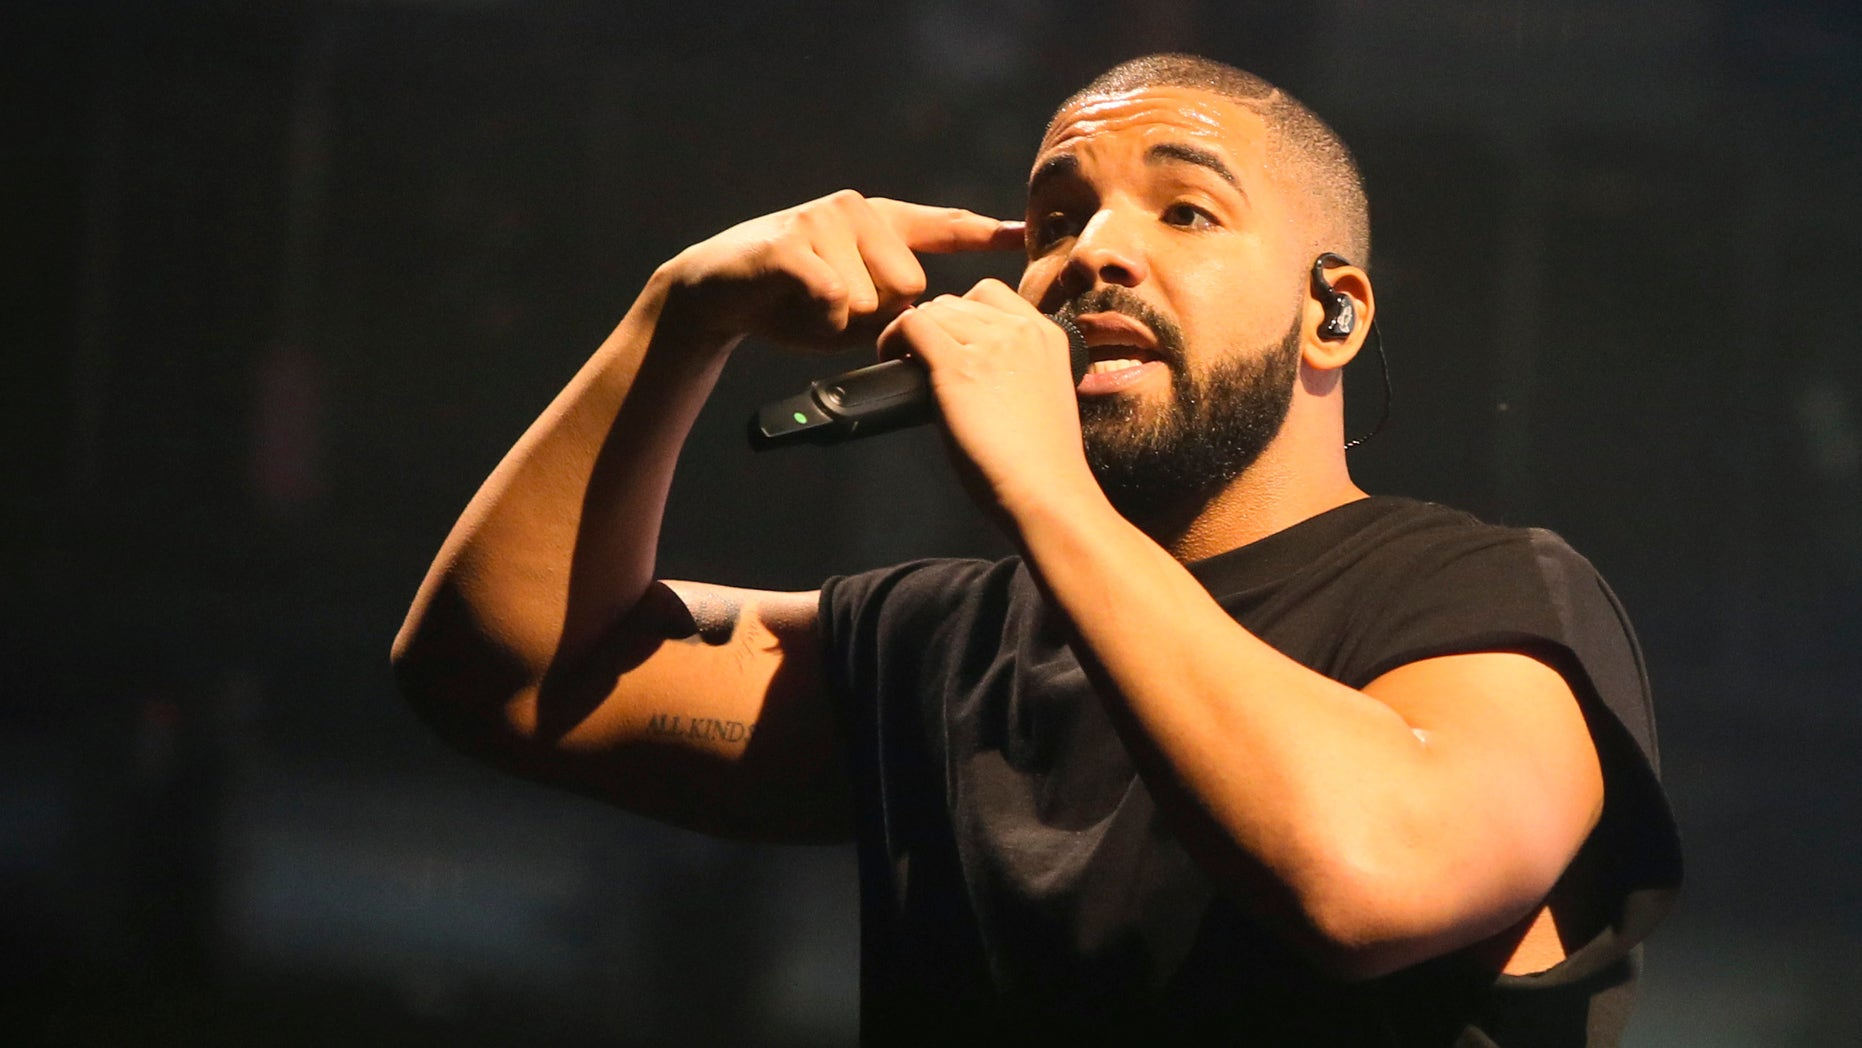 Drake performs at the Austin City Limits Music Festival in Zilker Park on Saturday, Oct. 3, 2015, in Austin, Texas. (Photo by Jack Plunkett/Invision/AP)